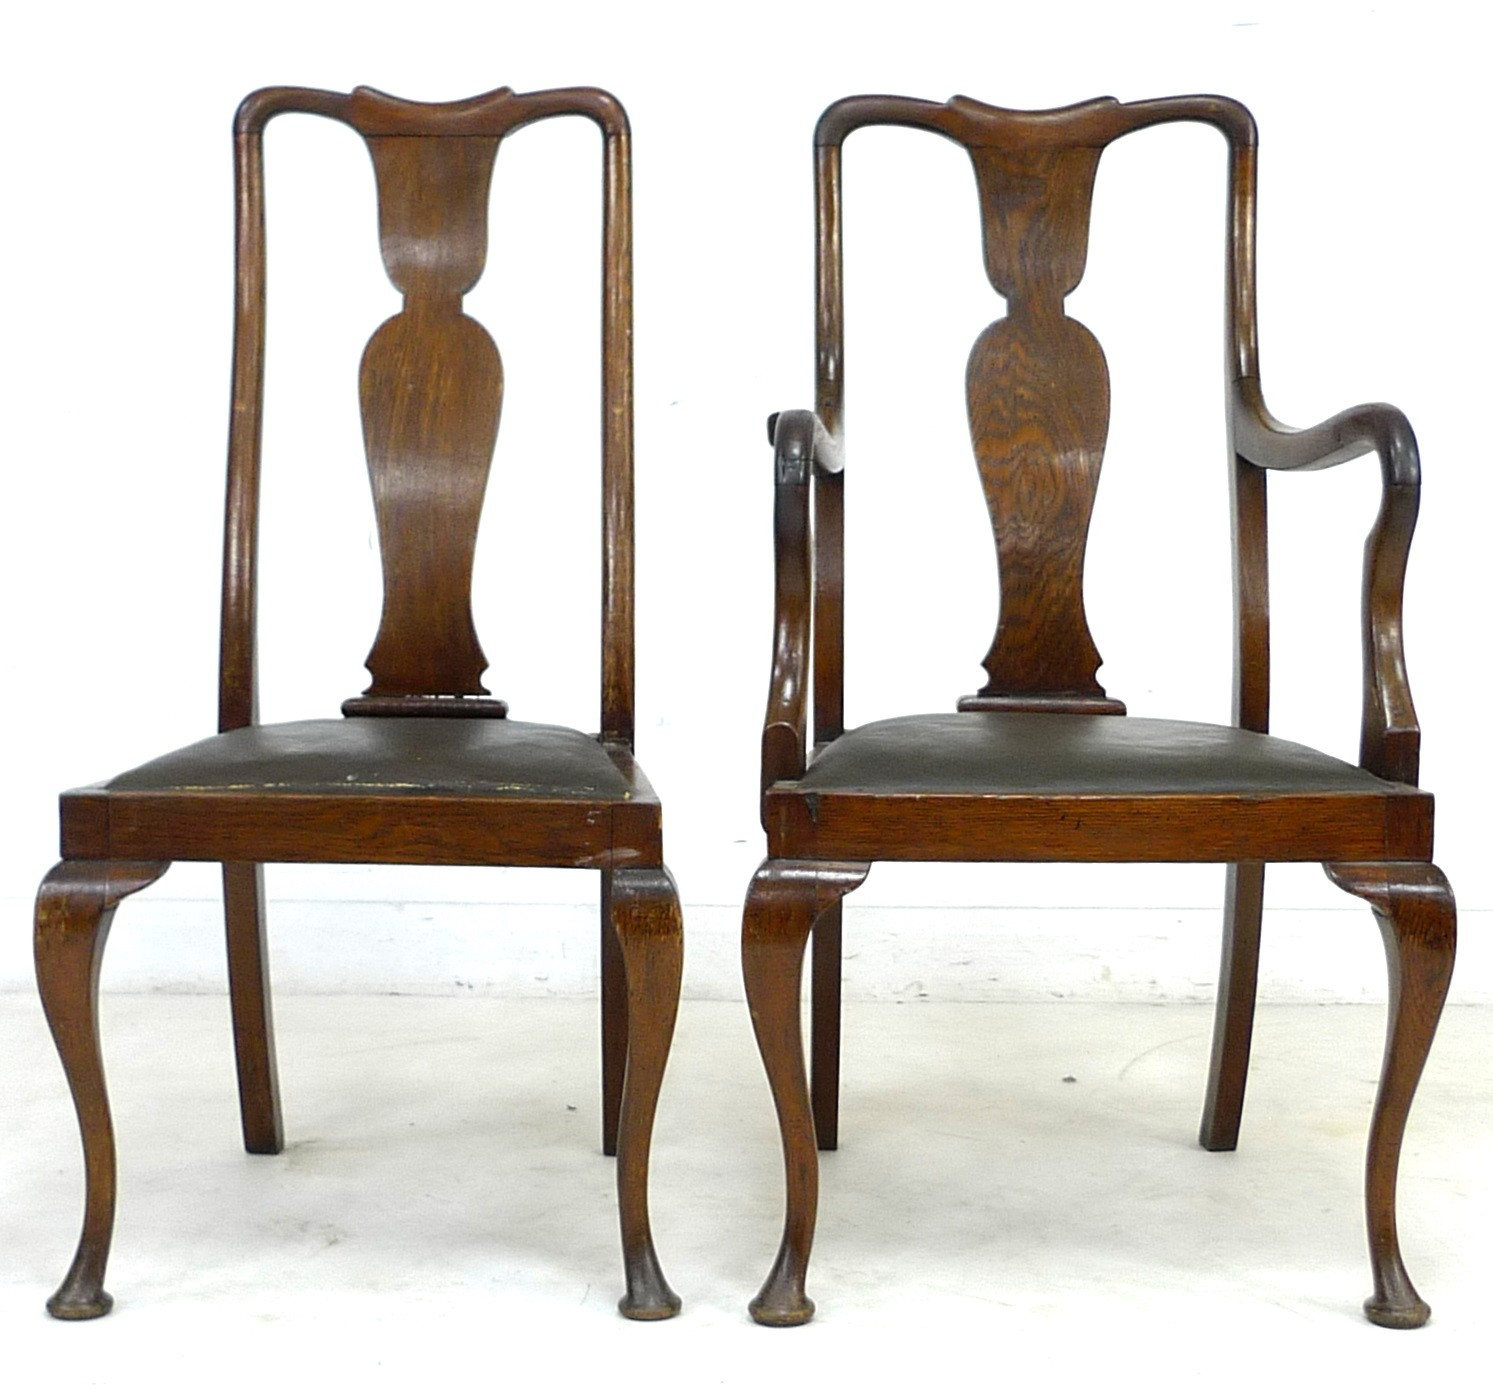 A set of six early 20th century oak dining chairs, 52 by 55 by 106cm high, in Queen Anne style - Image 2 of 4